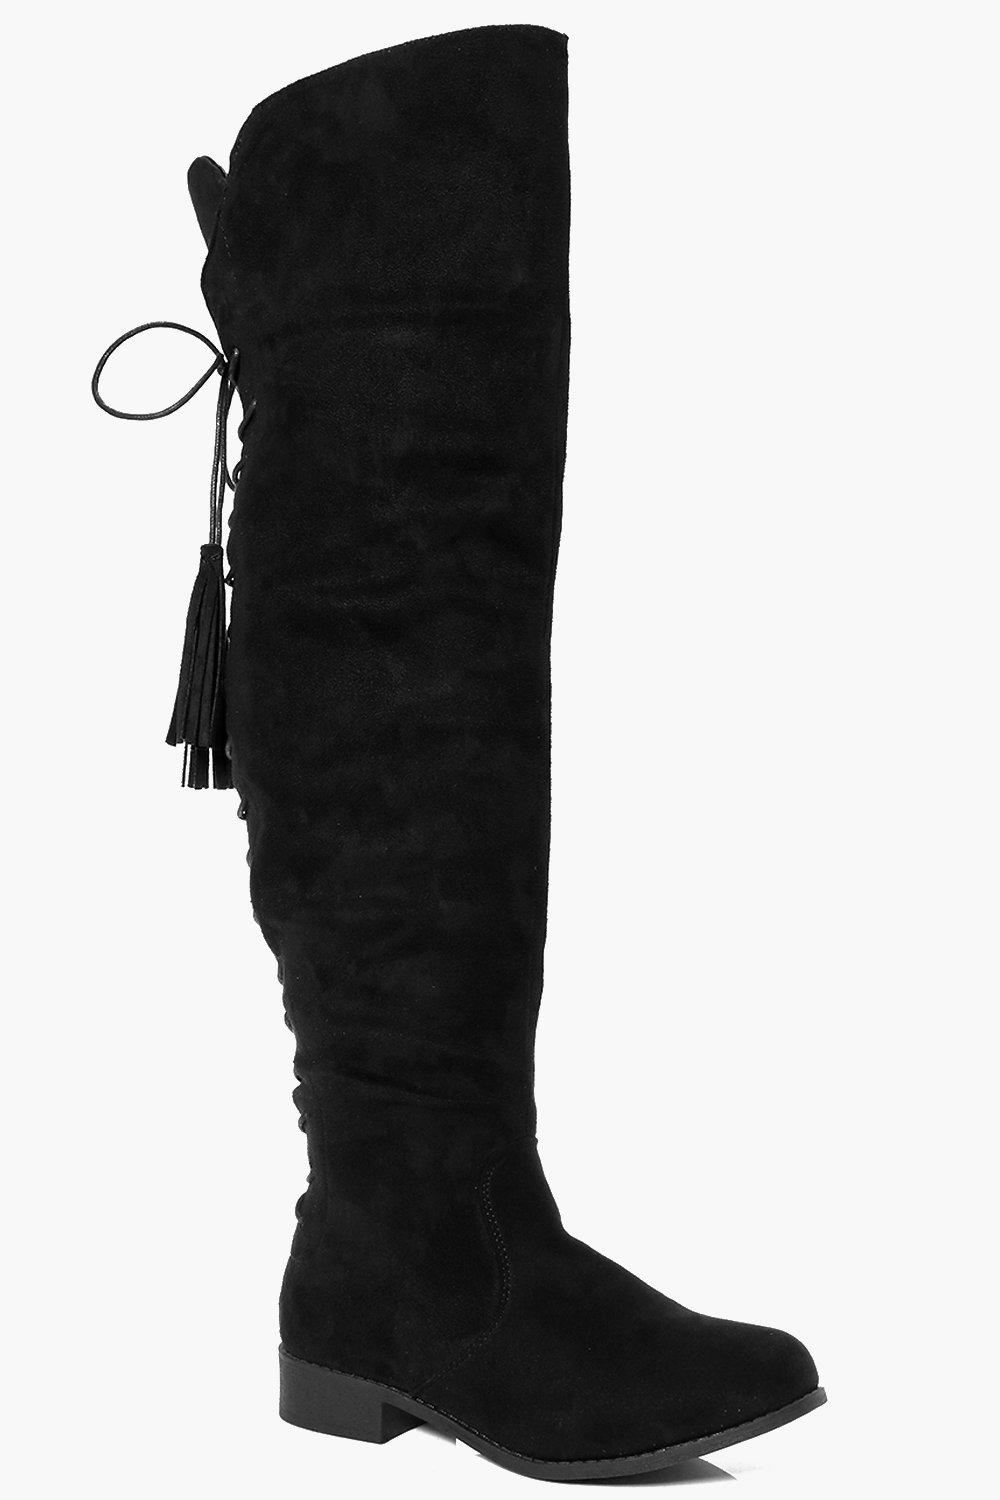 Rose Flat Lace Back Tassel Long Leg Boot